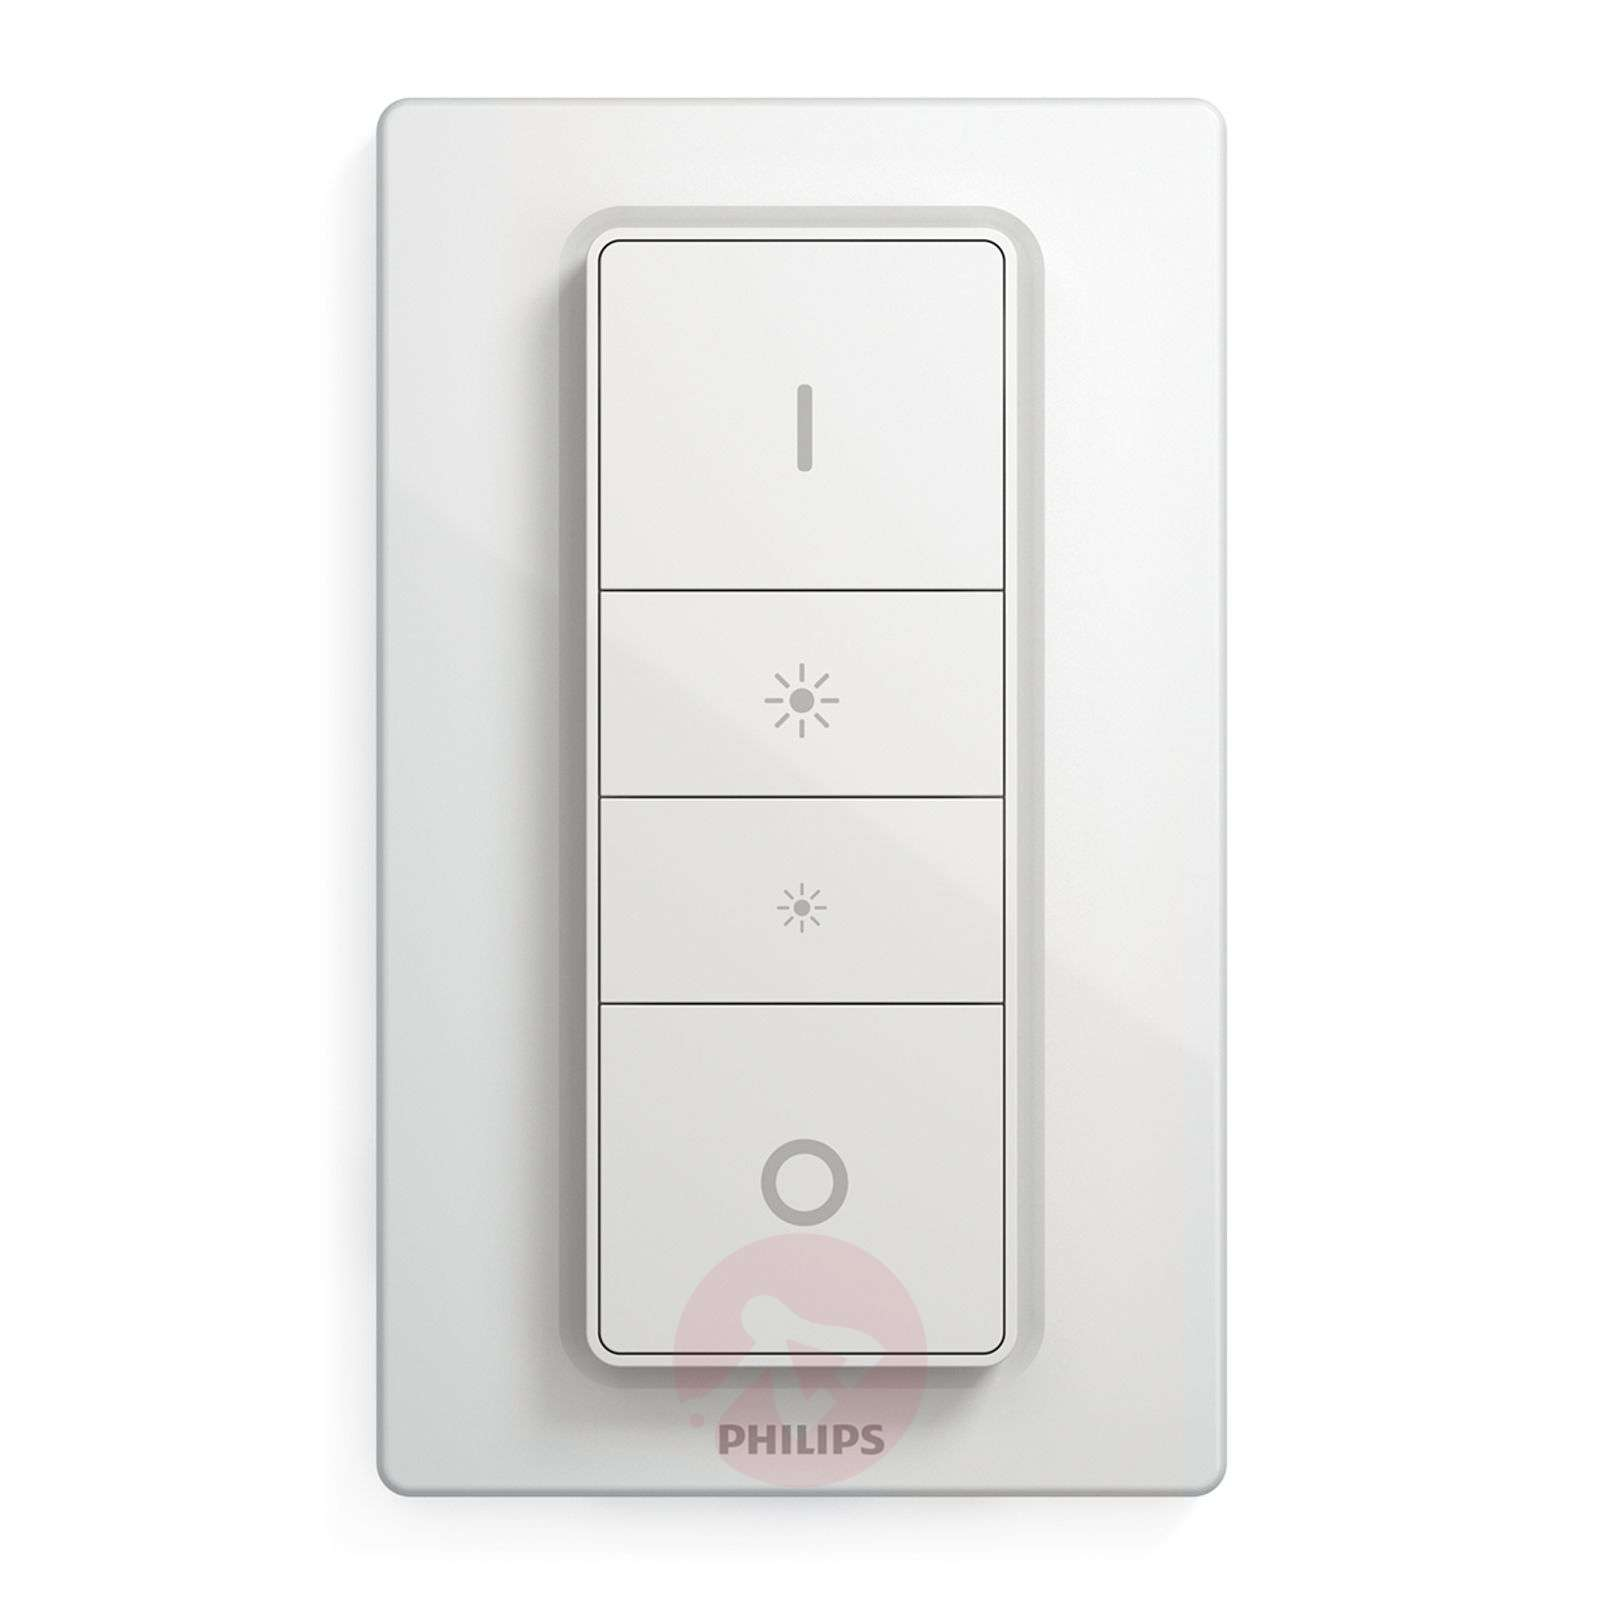 LED ceiling light Philips Hue Being, dimmer switch-7531865-01